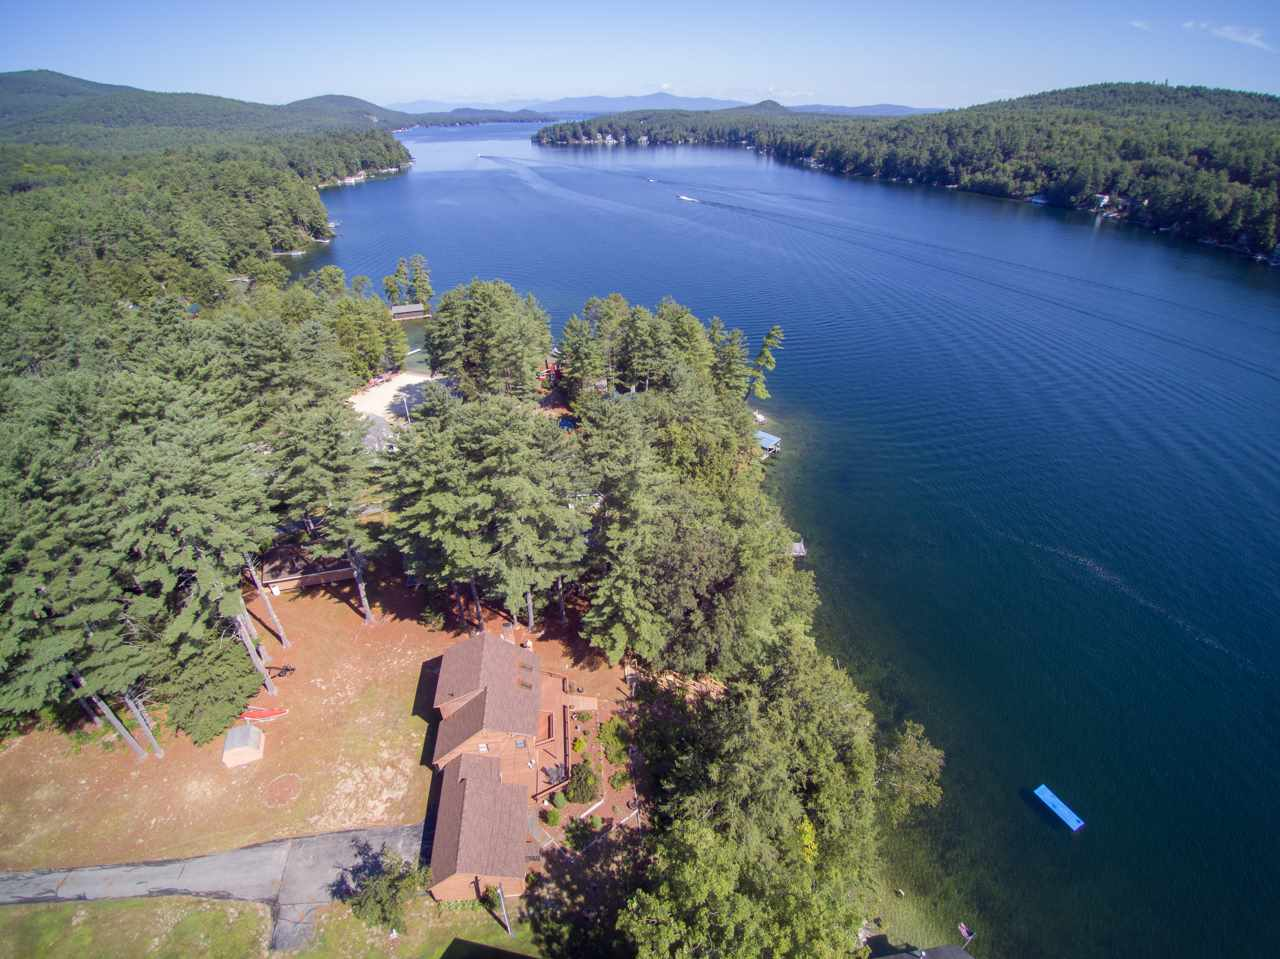 MLS 4789296: 9 Spokies Way, Alton NH